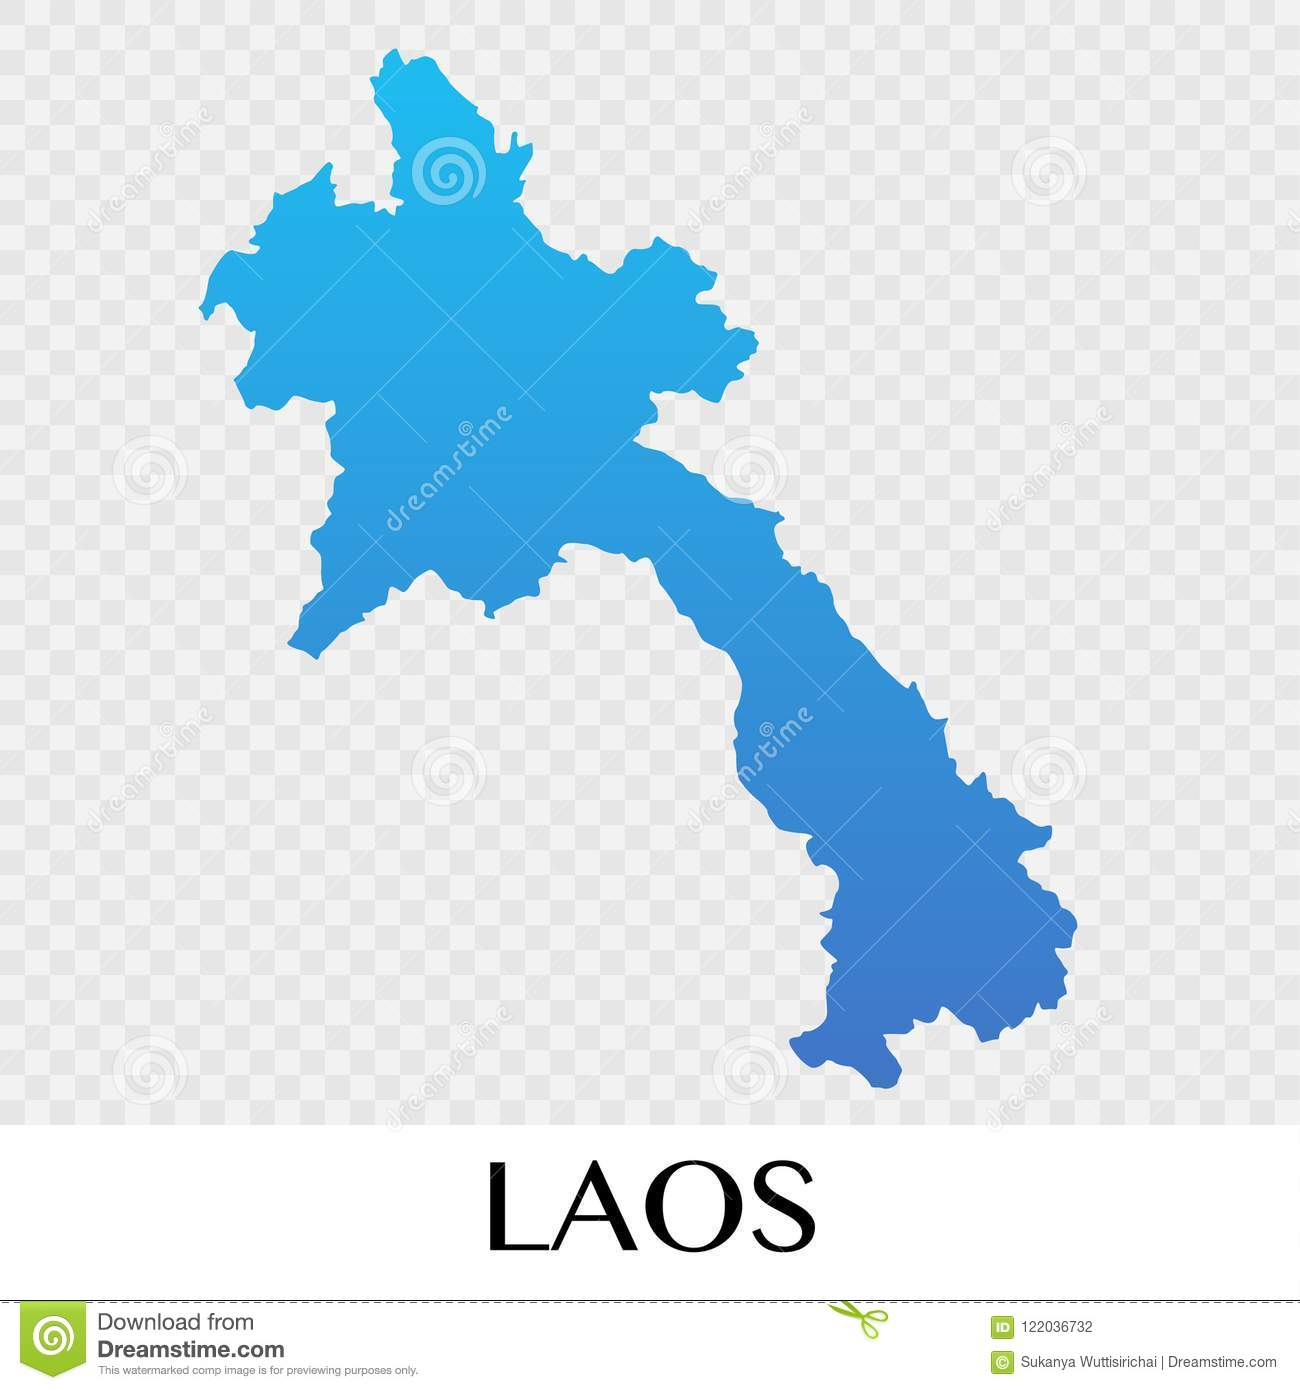 Map Of Asia Continent.Laos Map In Asia Continent Illustration Design Stock Vector